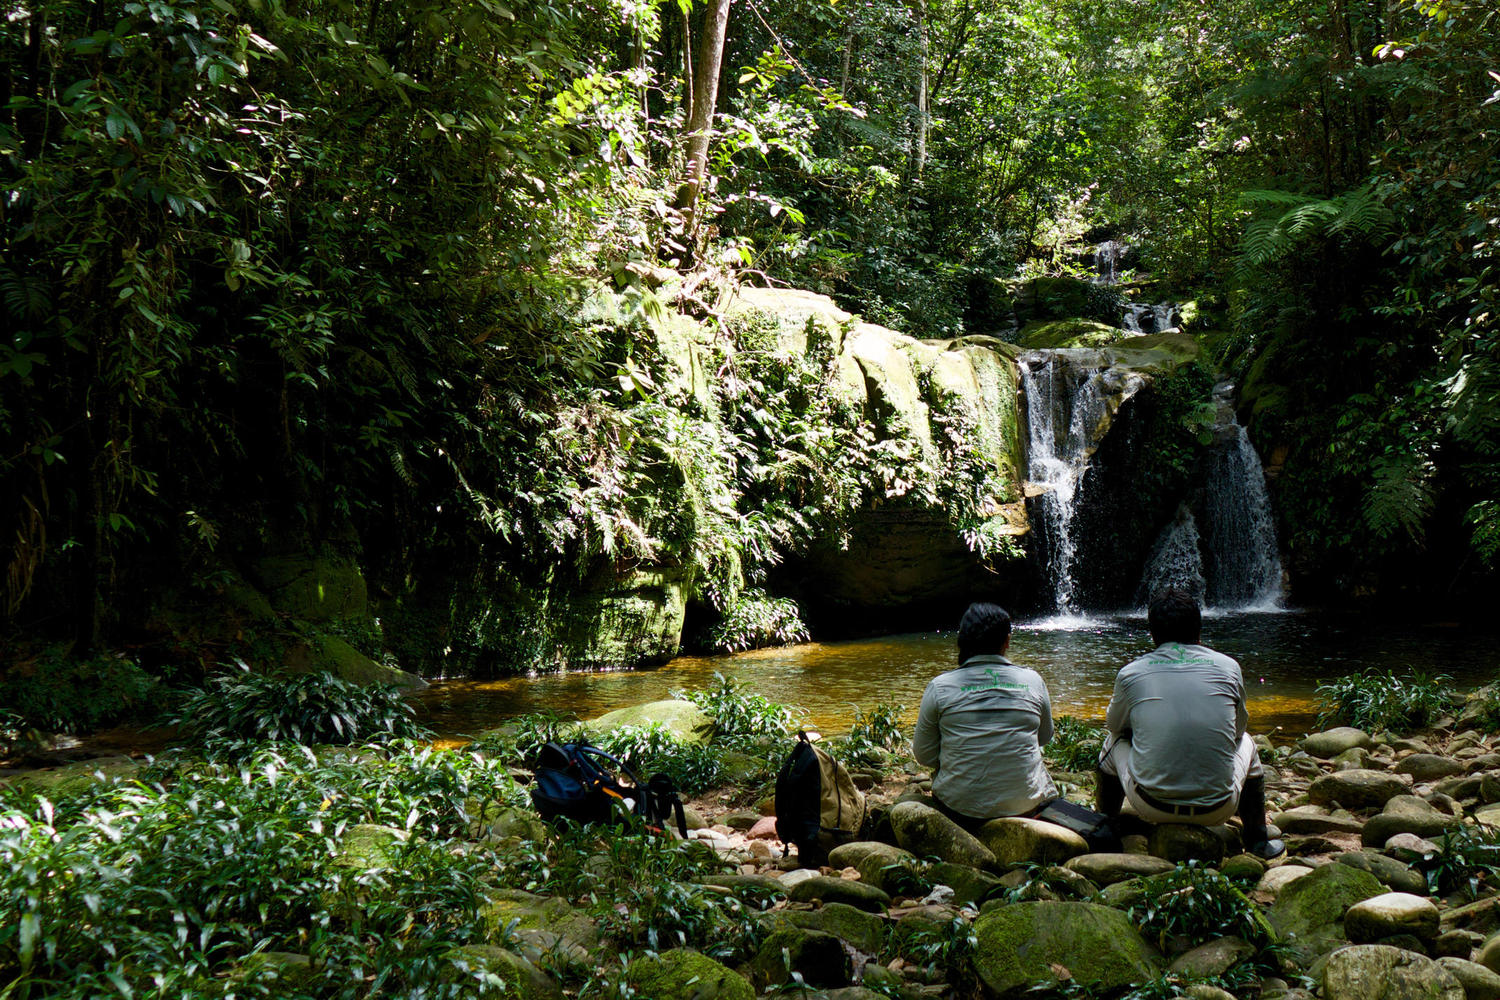 Taking a break at a waterfall in the Manu rainforest